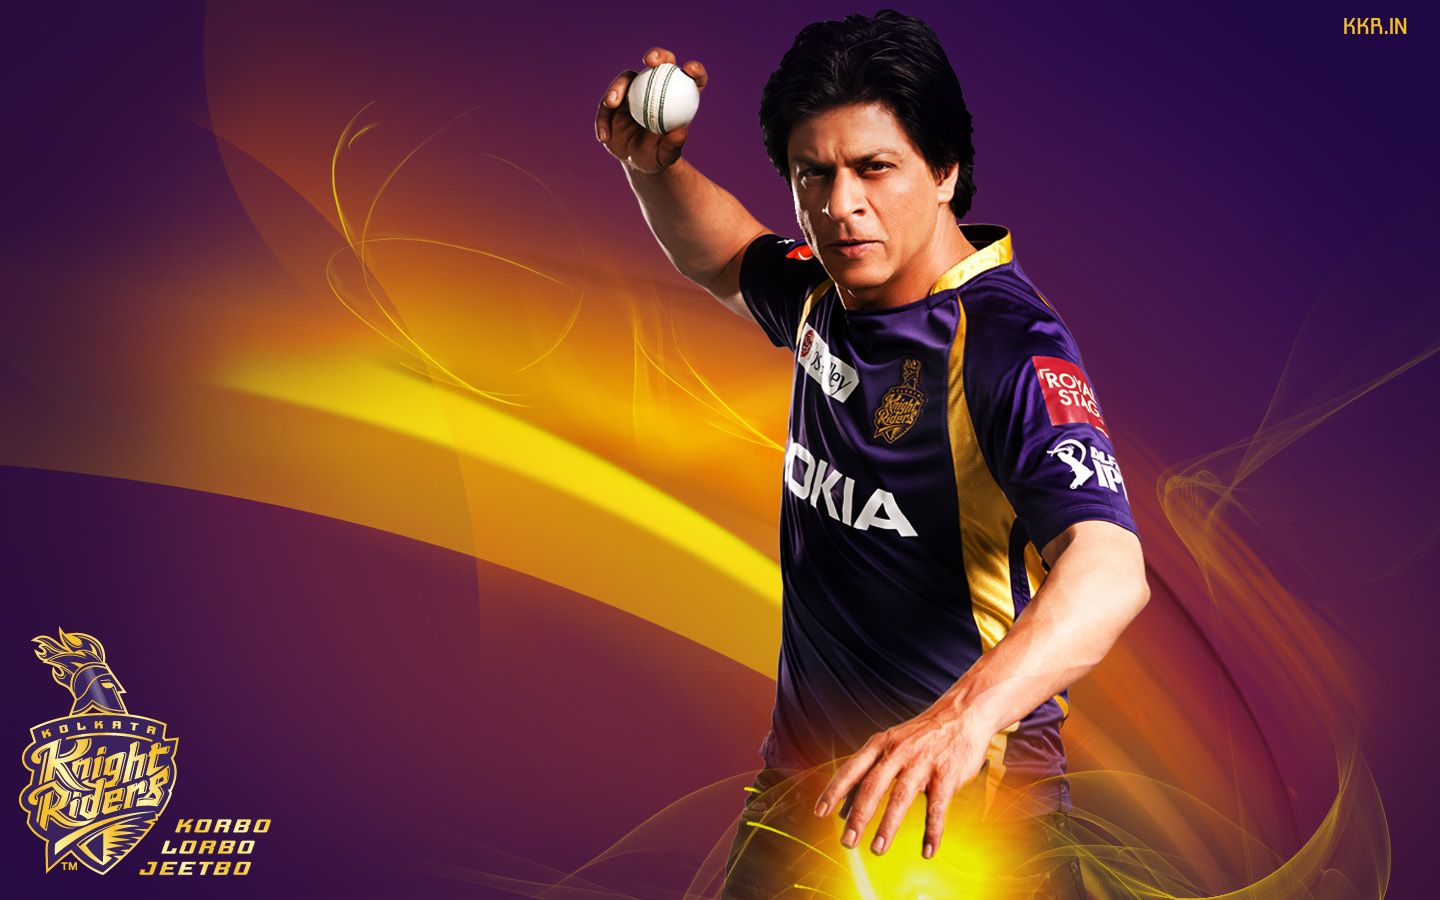 Ipl Knight Riders Wallpapers Places To Visit Bollywood Salman